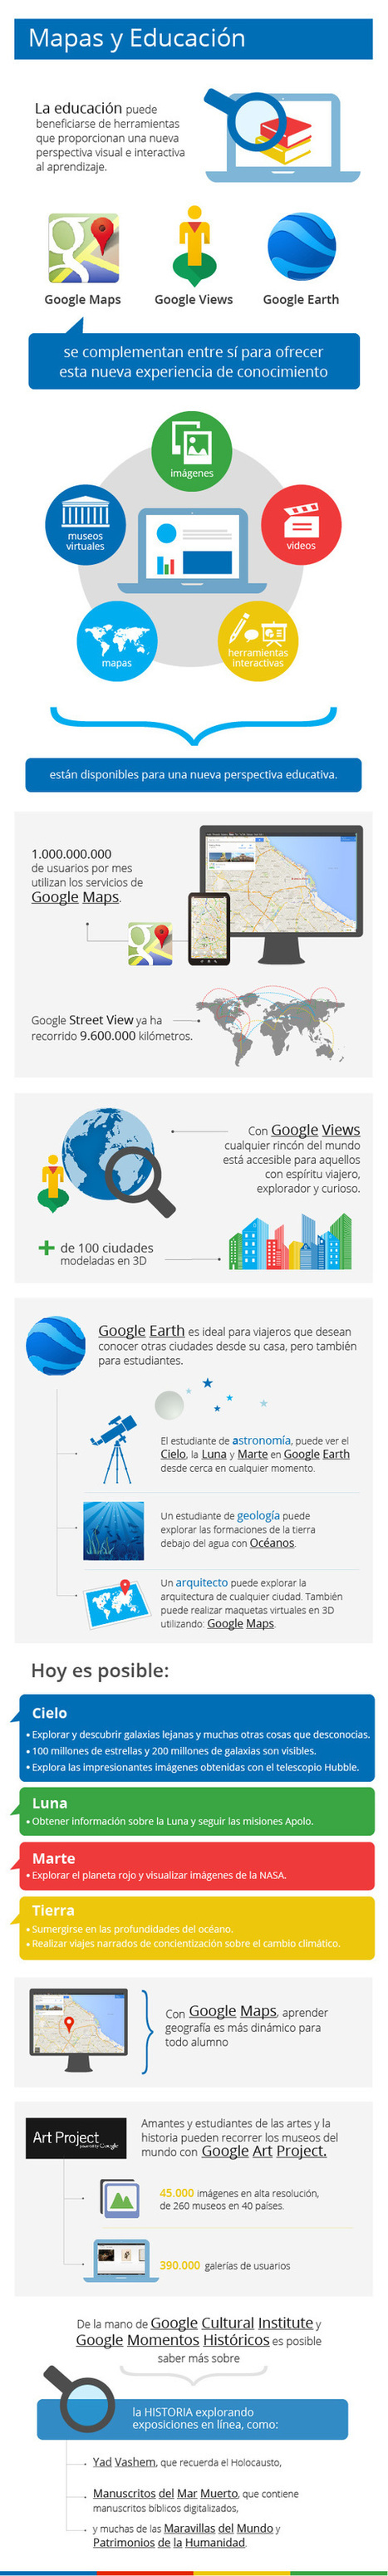 ¿Cómo está transformando Internet (y Google) el sistema educativo? | Universidad 3.0 | Scoop.it